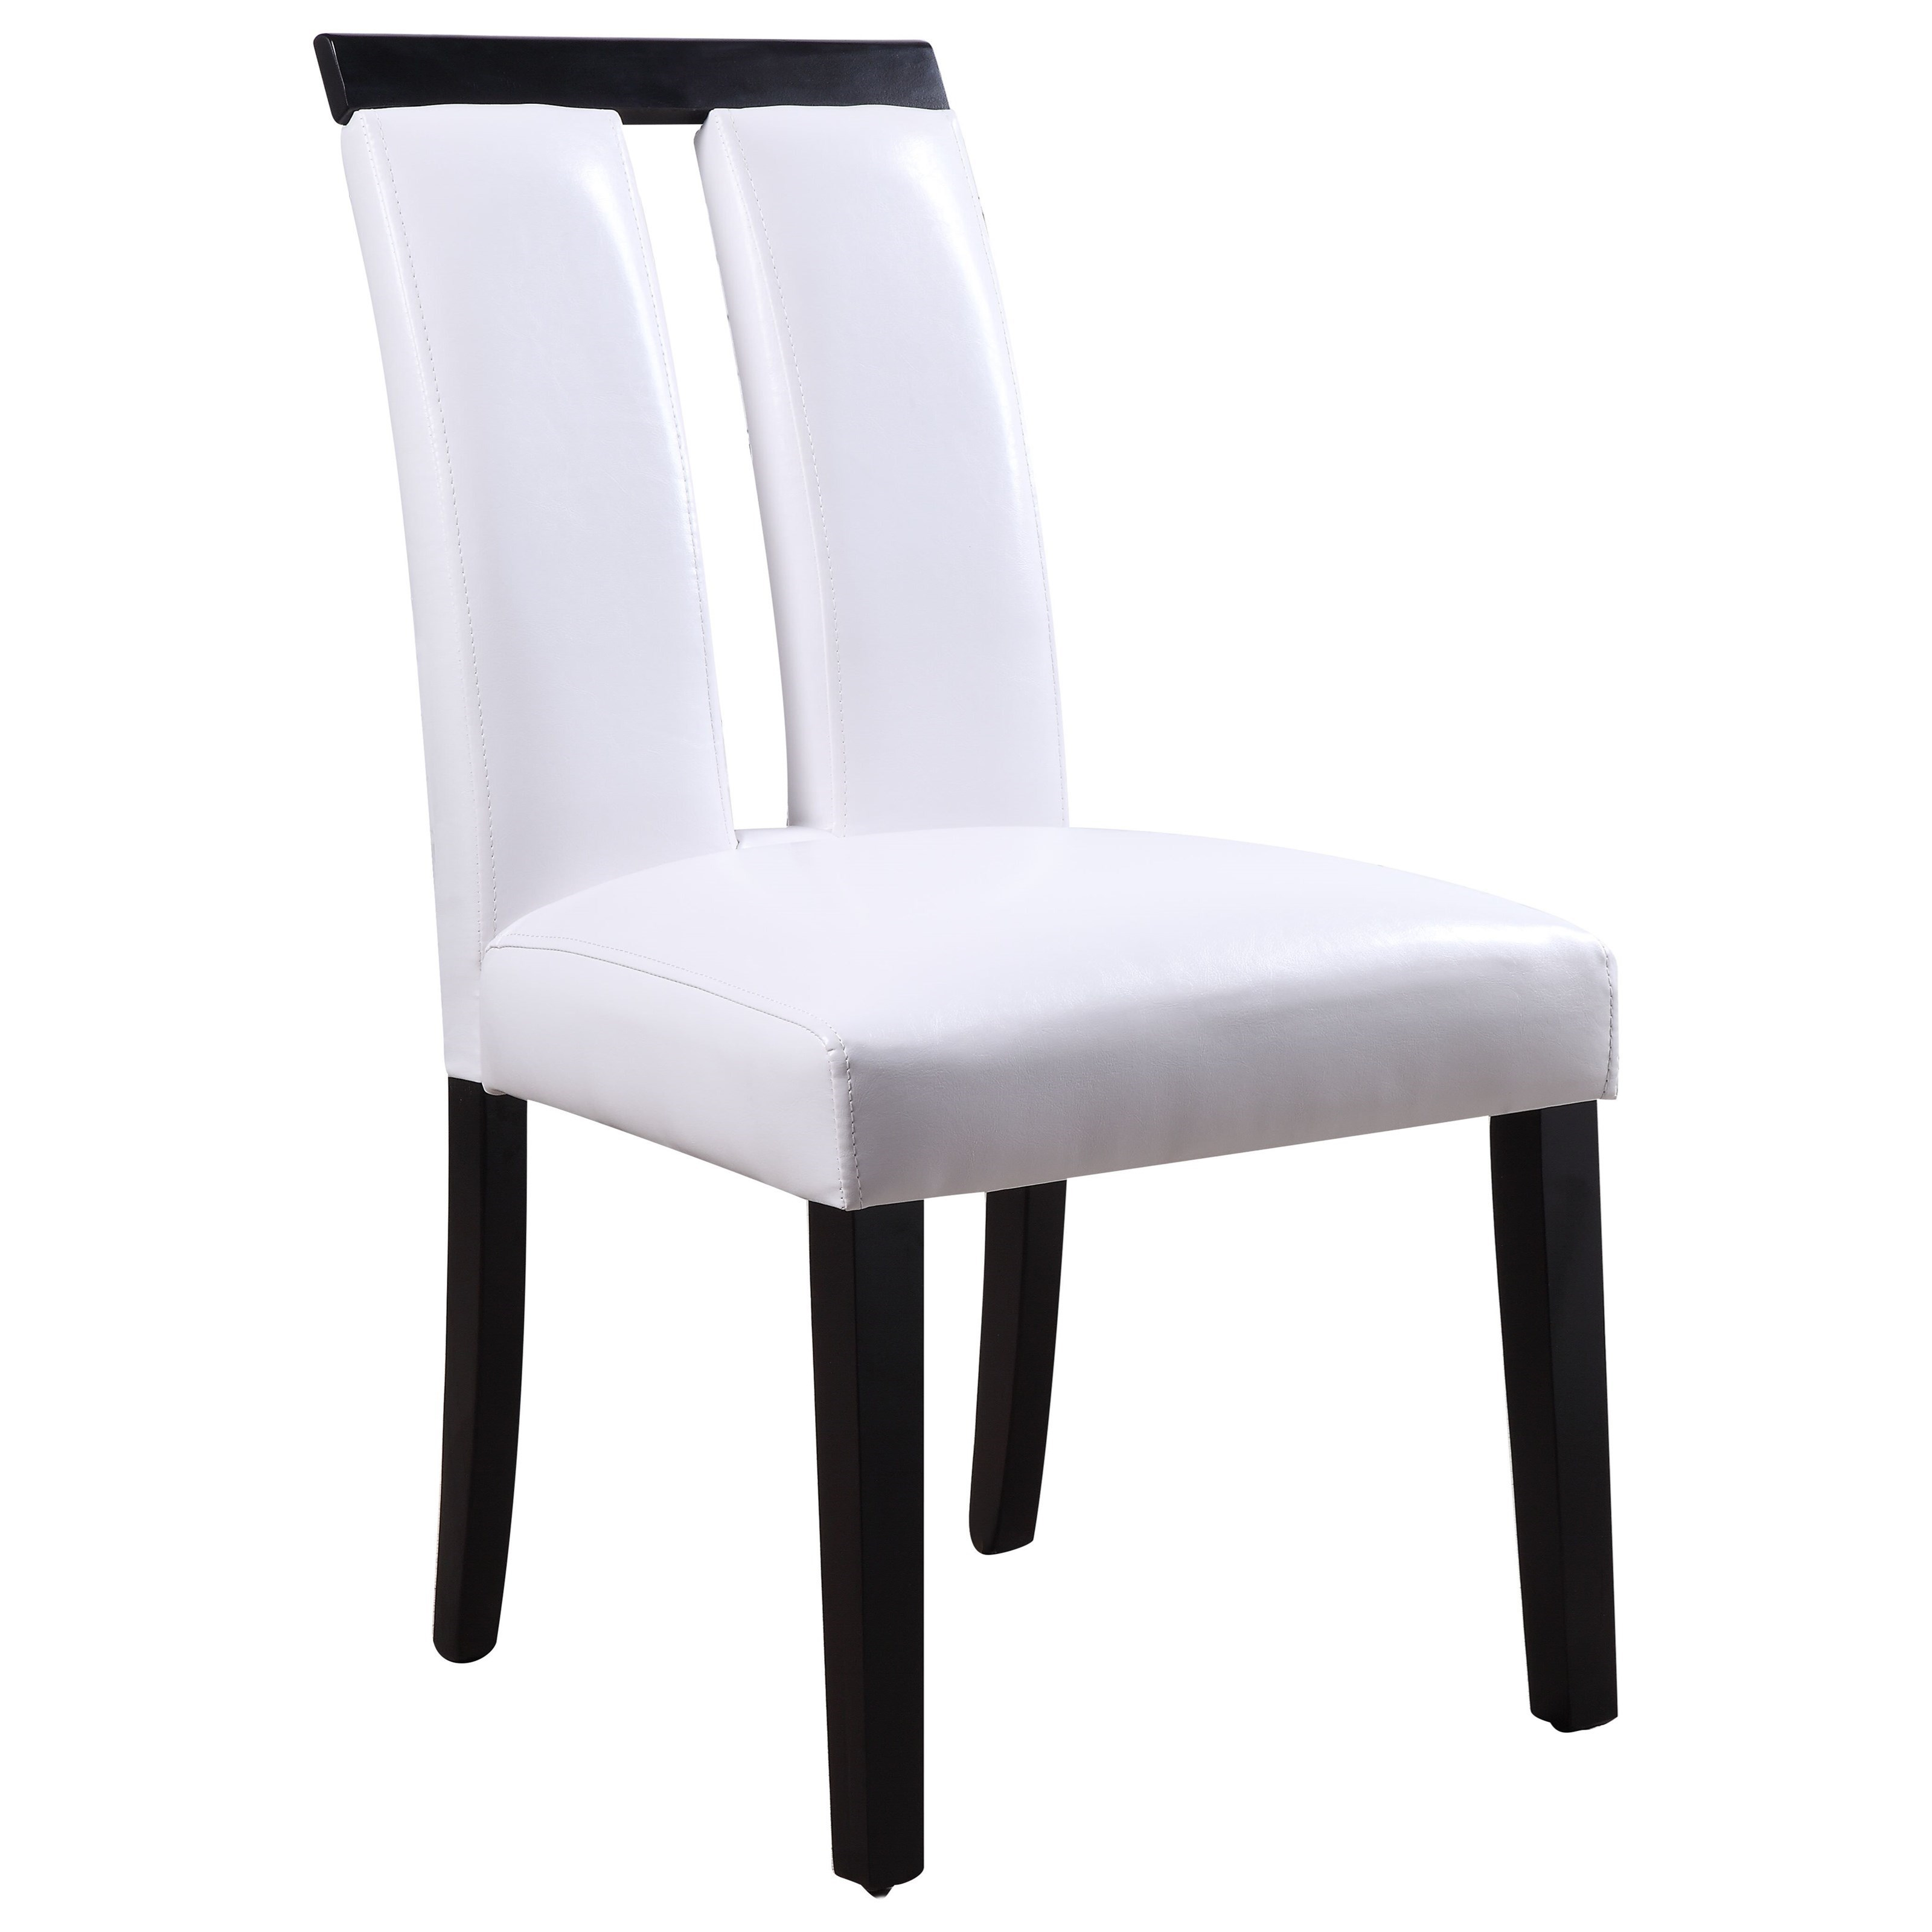 Bernice Side Chair by Acme Furniture at Nassau Furniture and Mattress